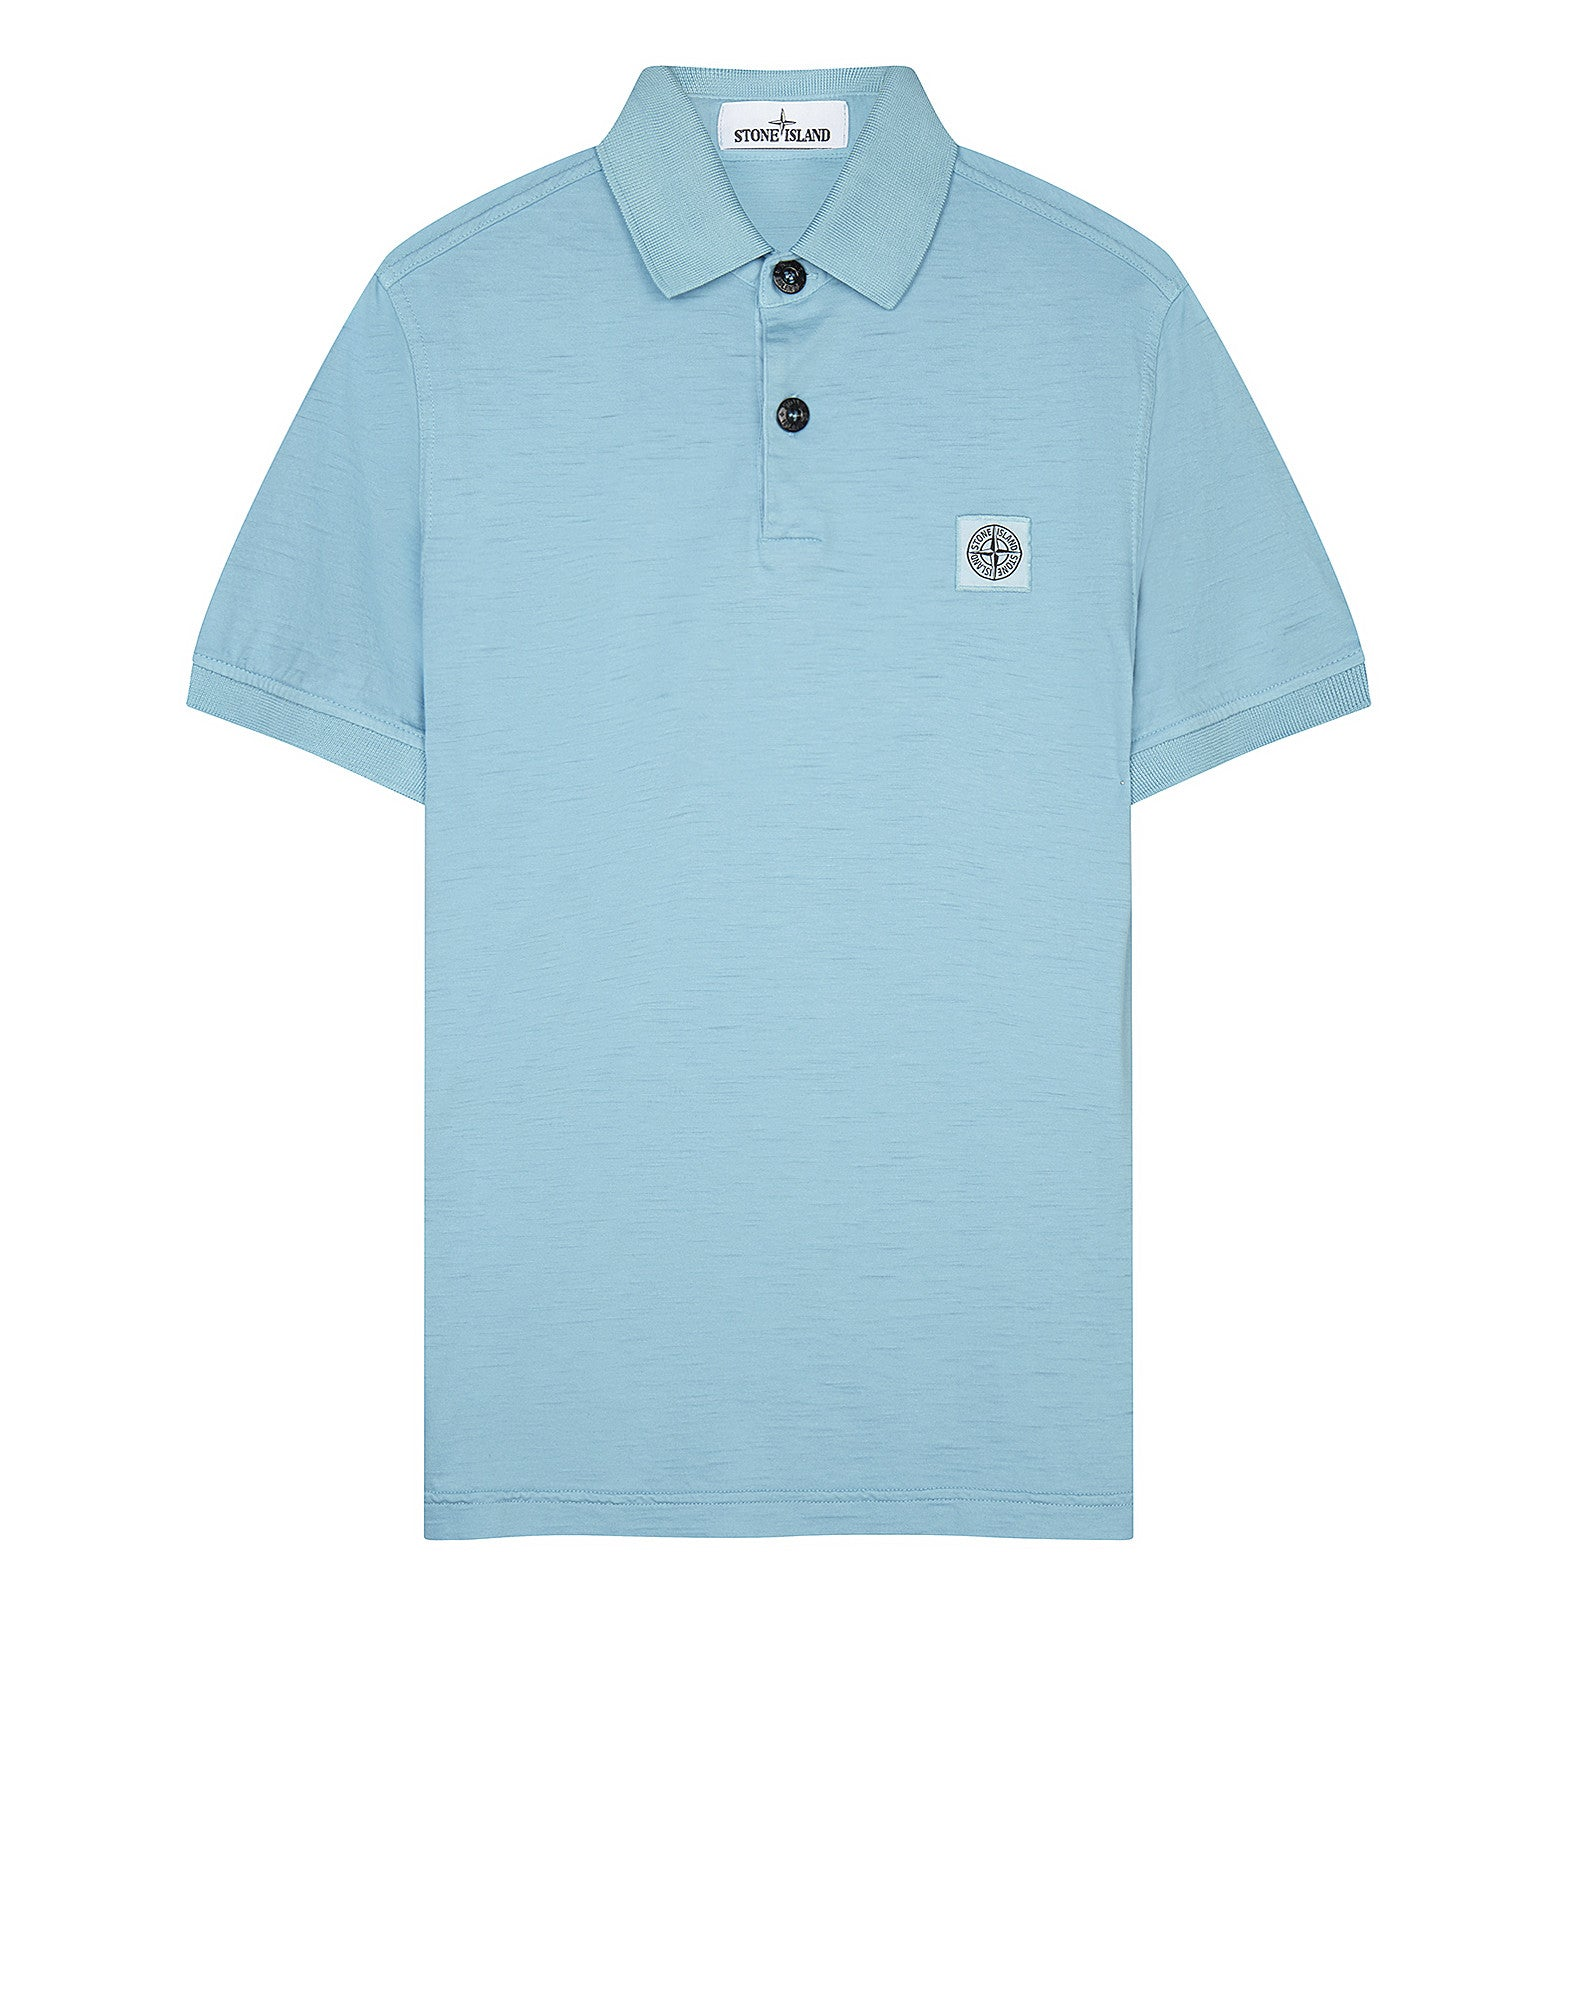 20866 Polo Shirt in Blue